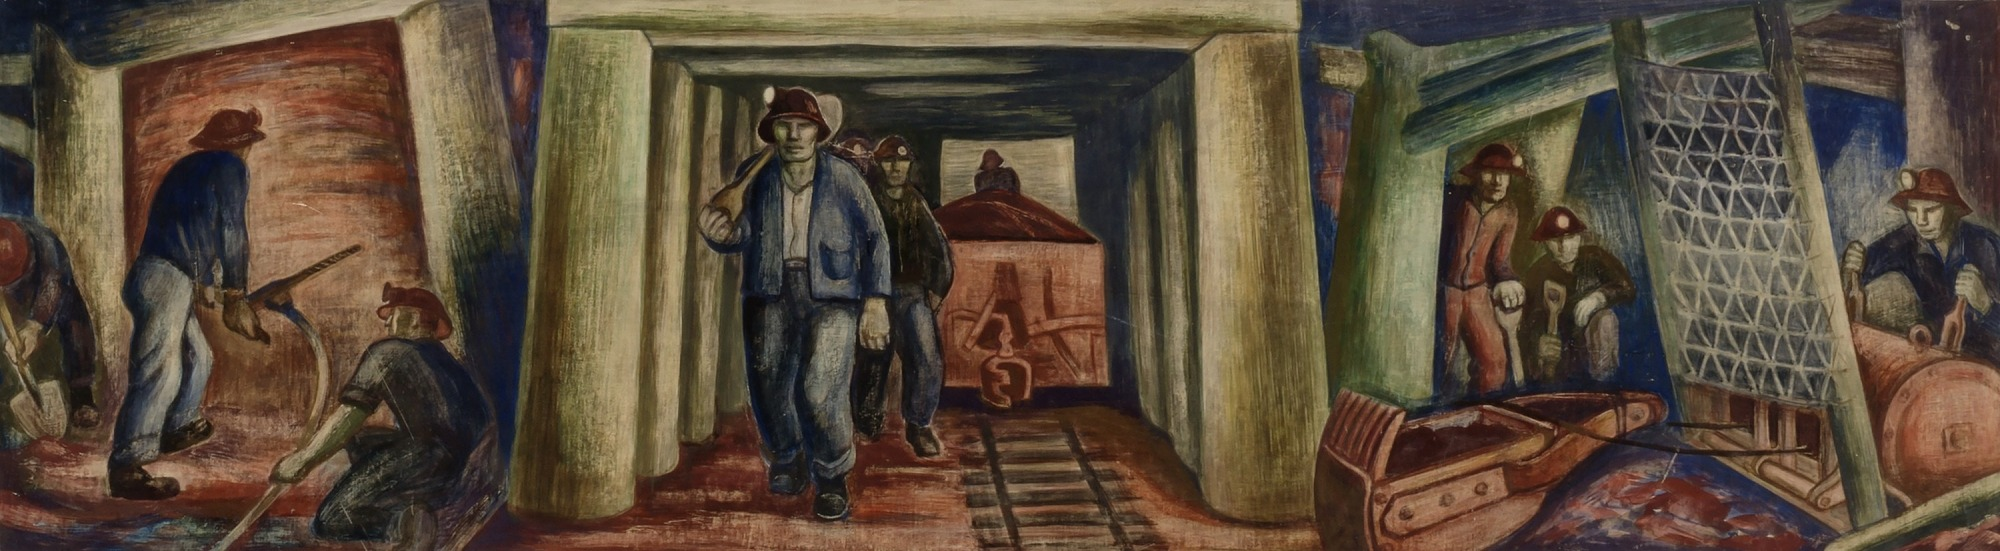 Iron Ore Mines (Ely, study for mural)